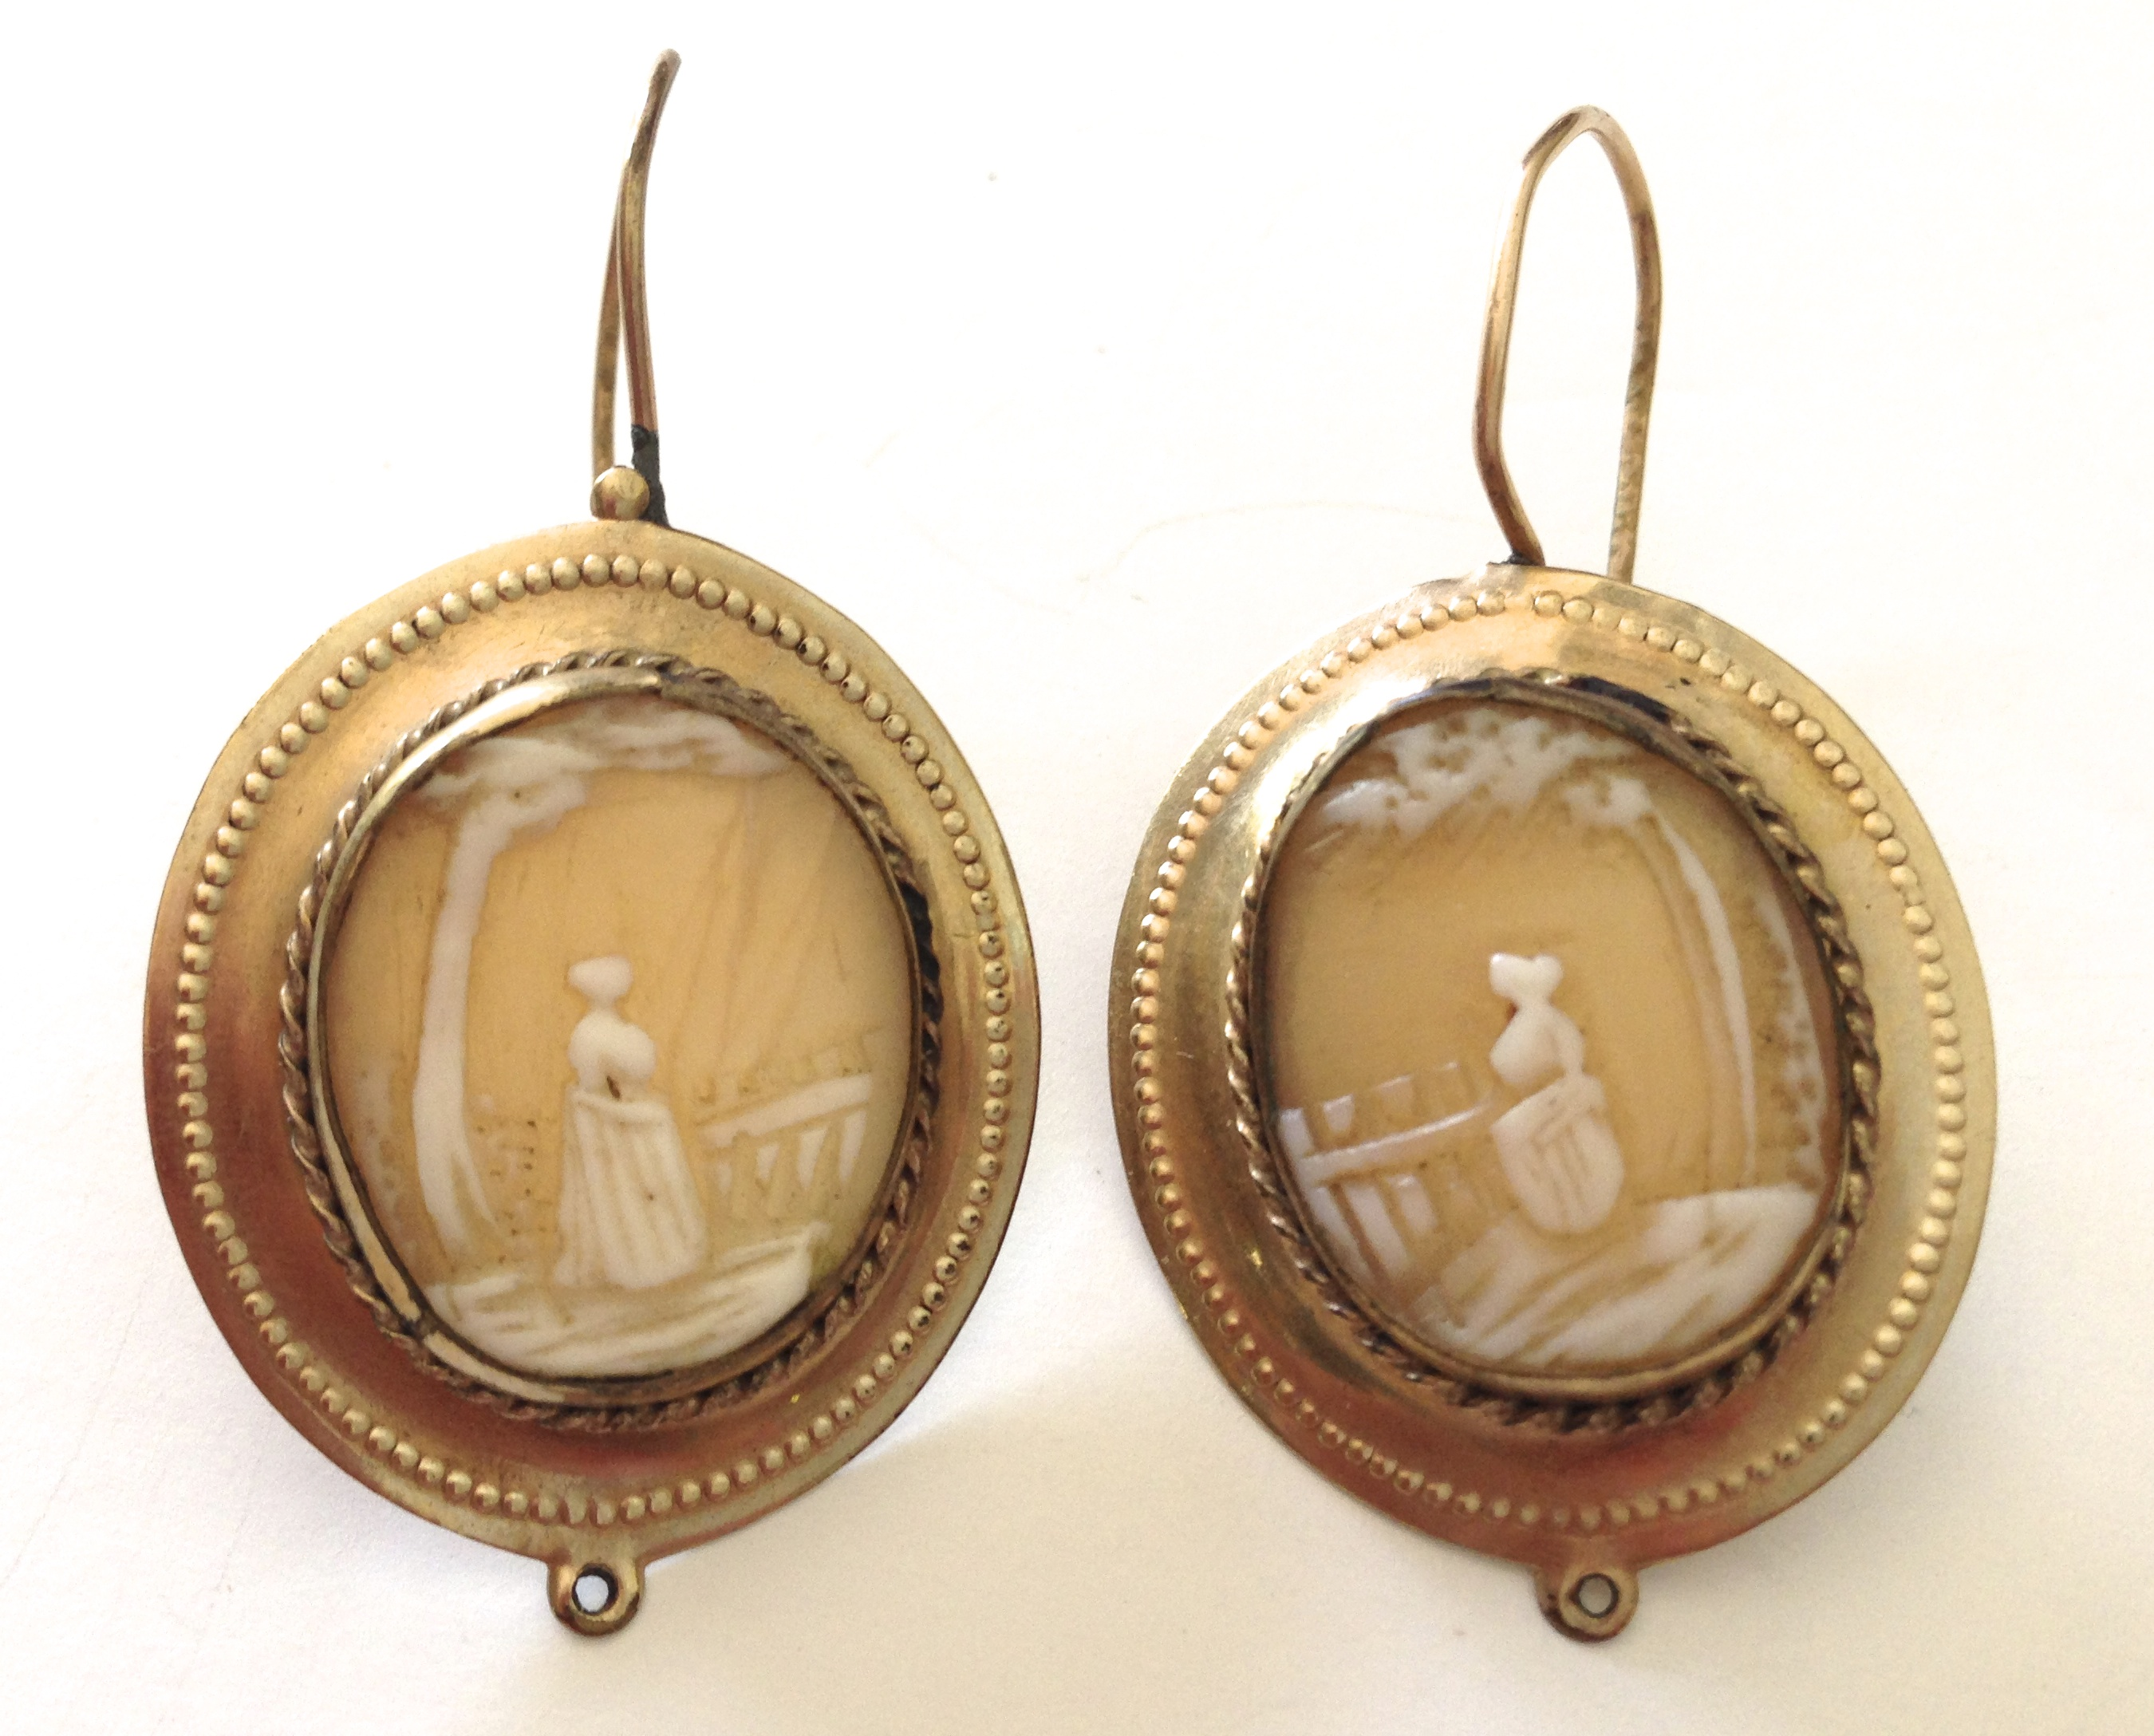 Cameo appearance how to tell if yours is vintage janvier road victorian landscape or scenic cameo earrings circa late 19th century to mozeypictures Images